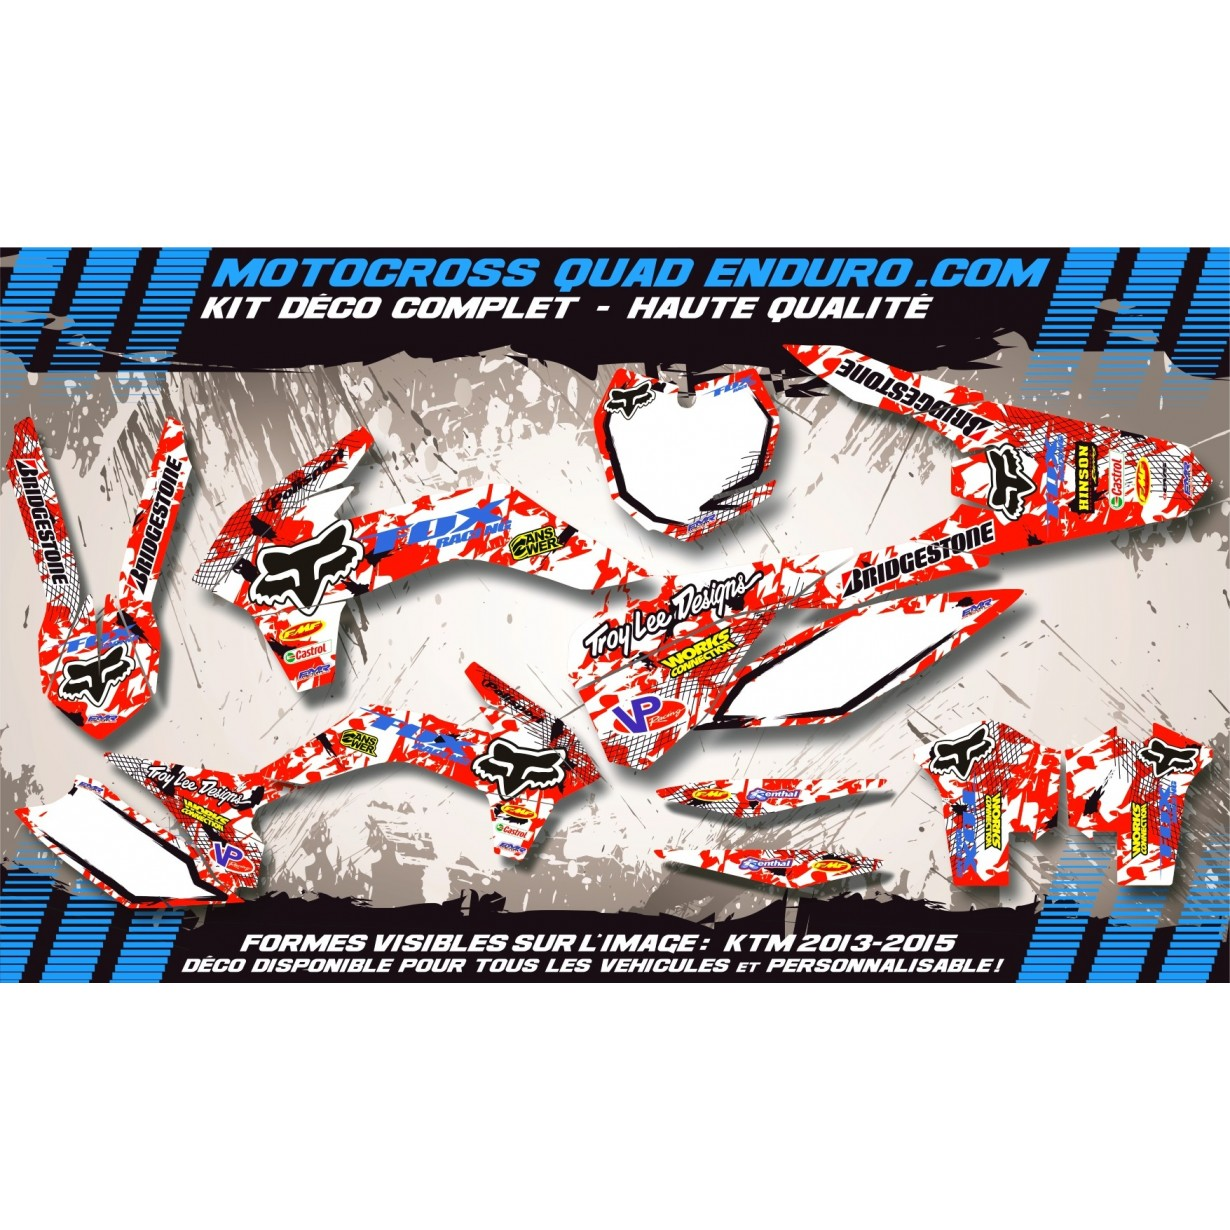 KIT DÉCO Perso TC 250 à 510 05-07 FOX MA9A